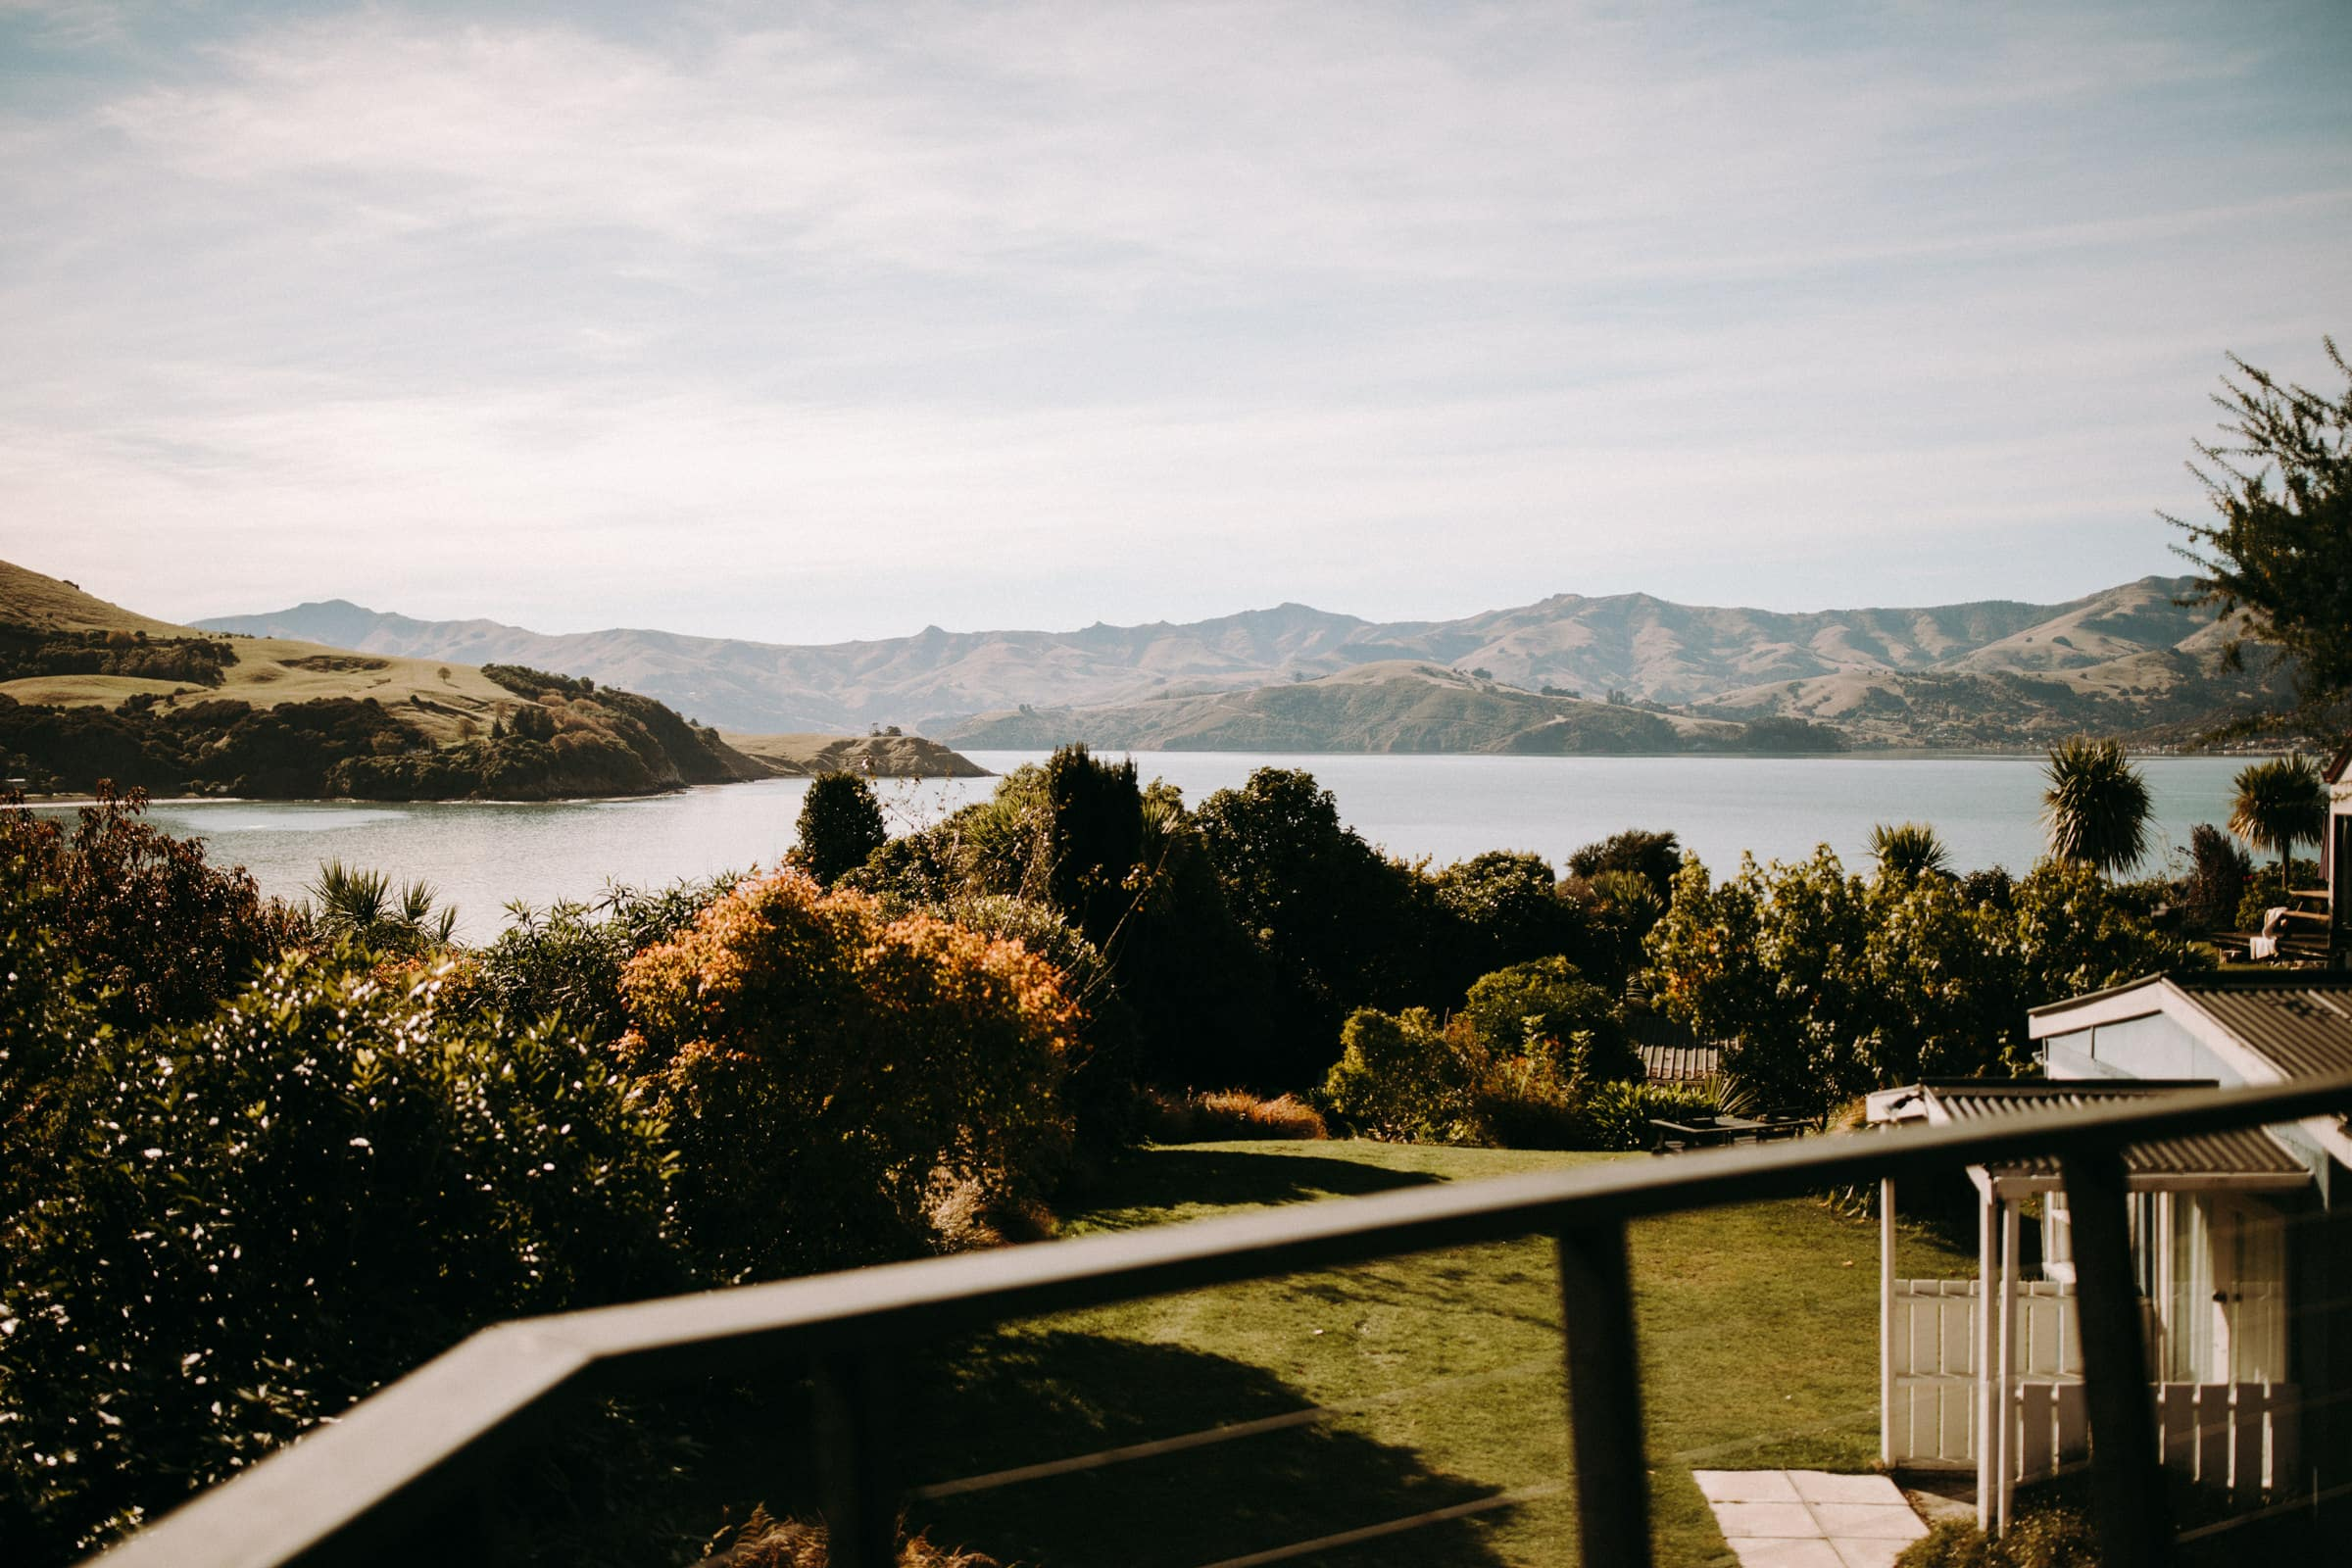 A New Zealand wedding destination features a balcony with a lawn, a lake and mountains.